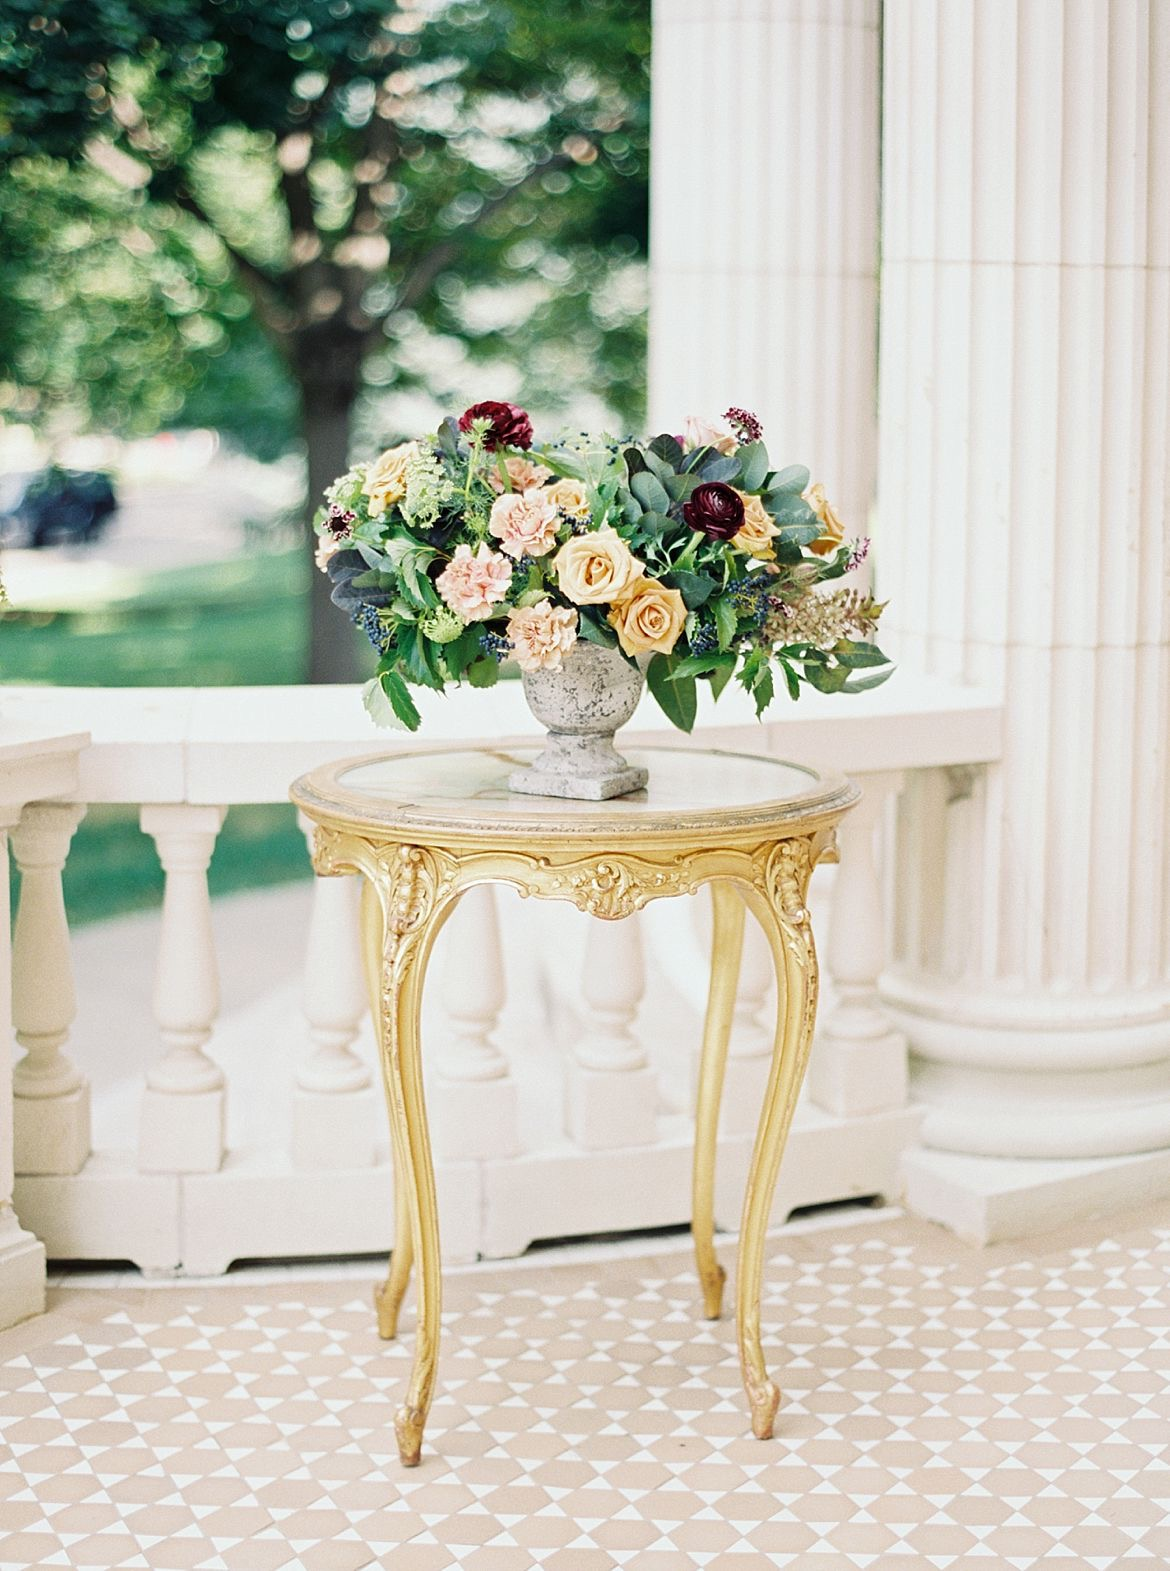 Best Wedding Inspiration Blog